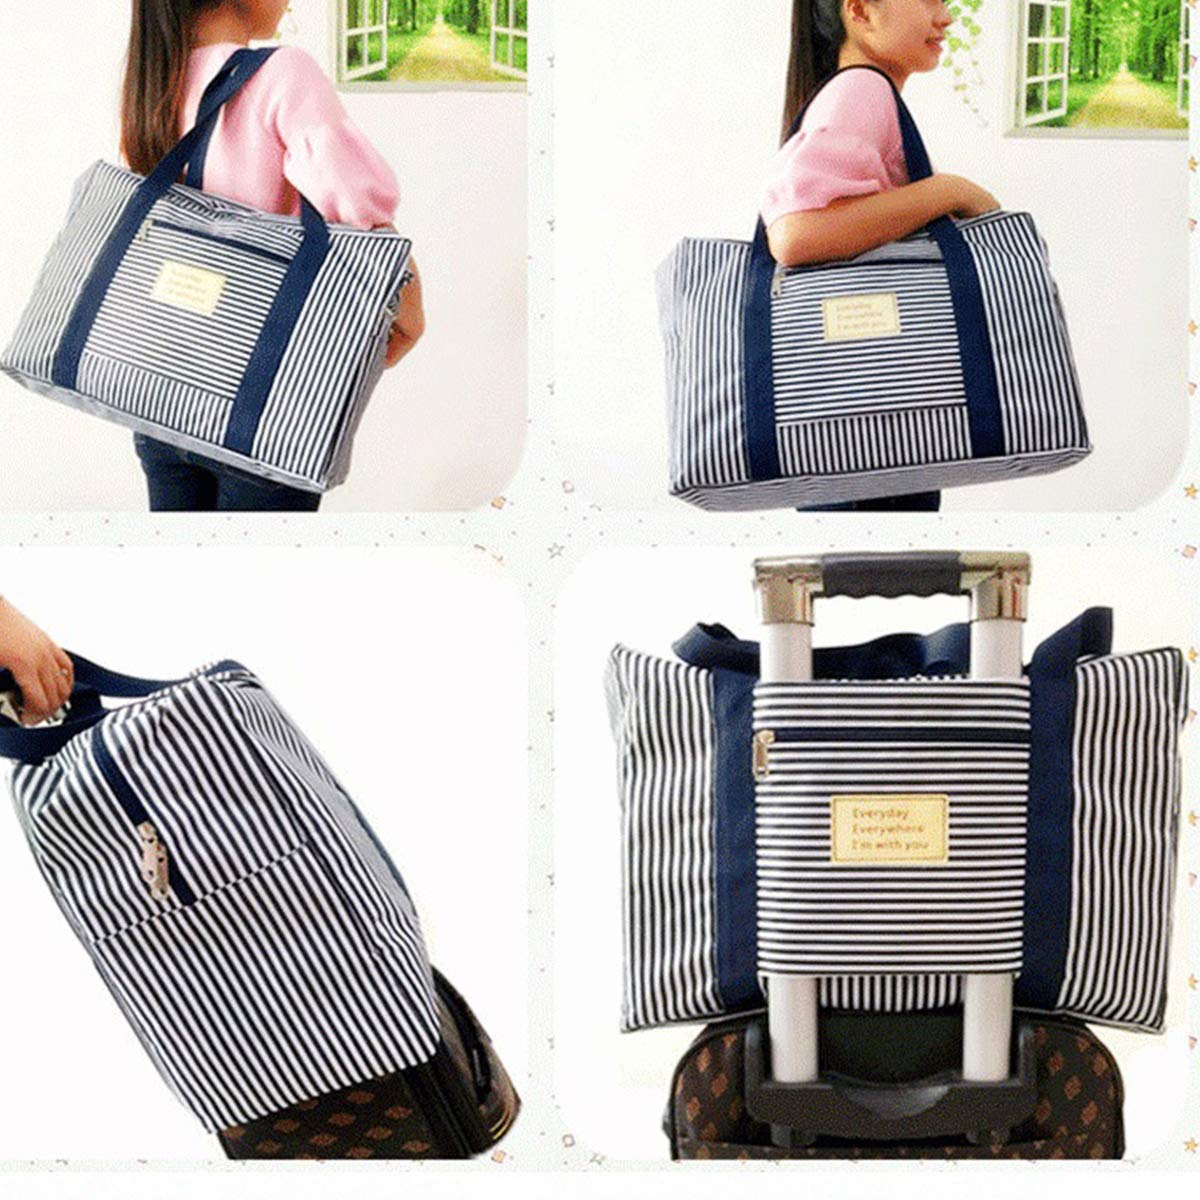 Oxford Fabric Clothes Bag Mxcell 90l Large Storage Bag Thick Ultra Size Under Bed Storage Striped Moving Zip Tote Bag Moisture Proof 23 6 X 19 7 X 11 8